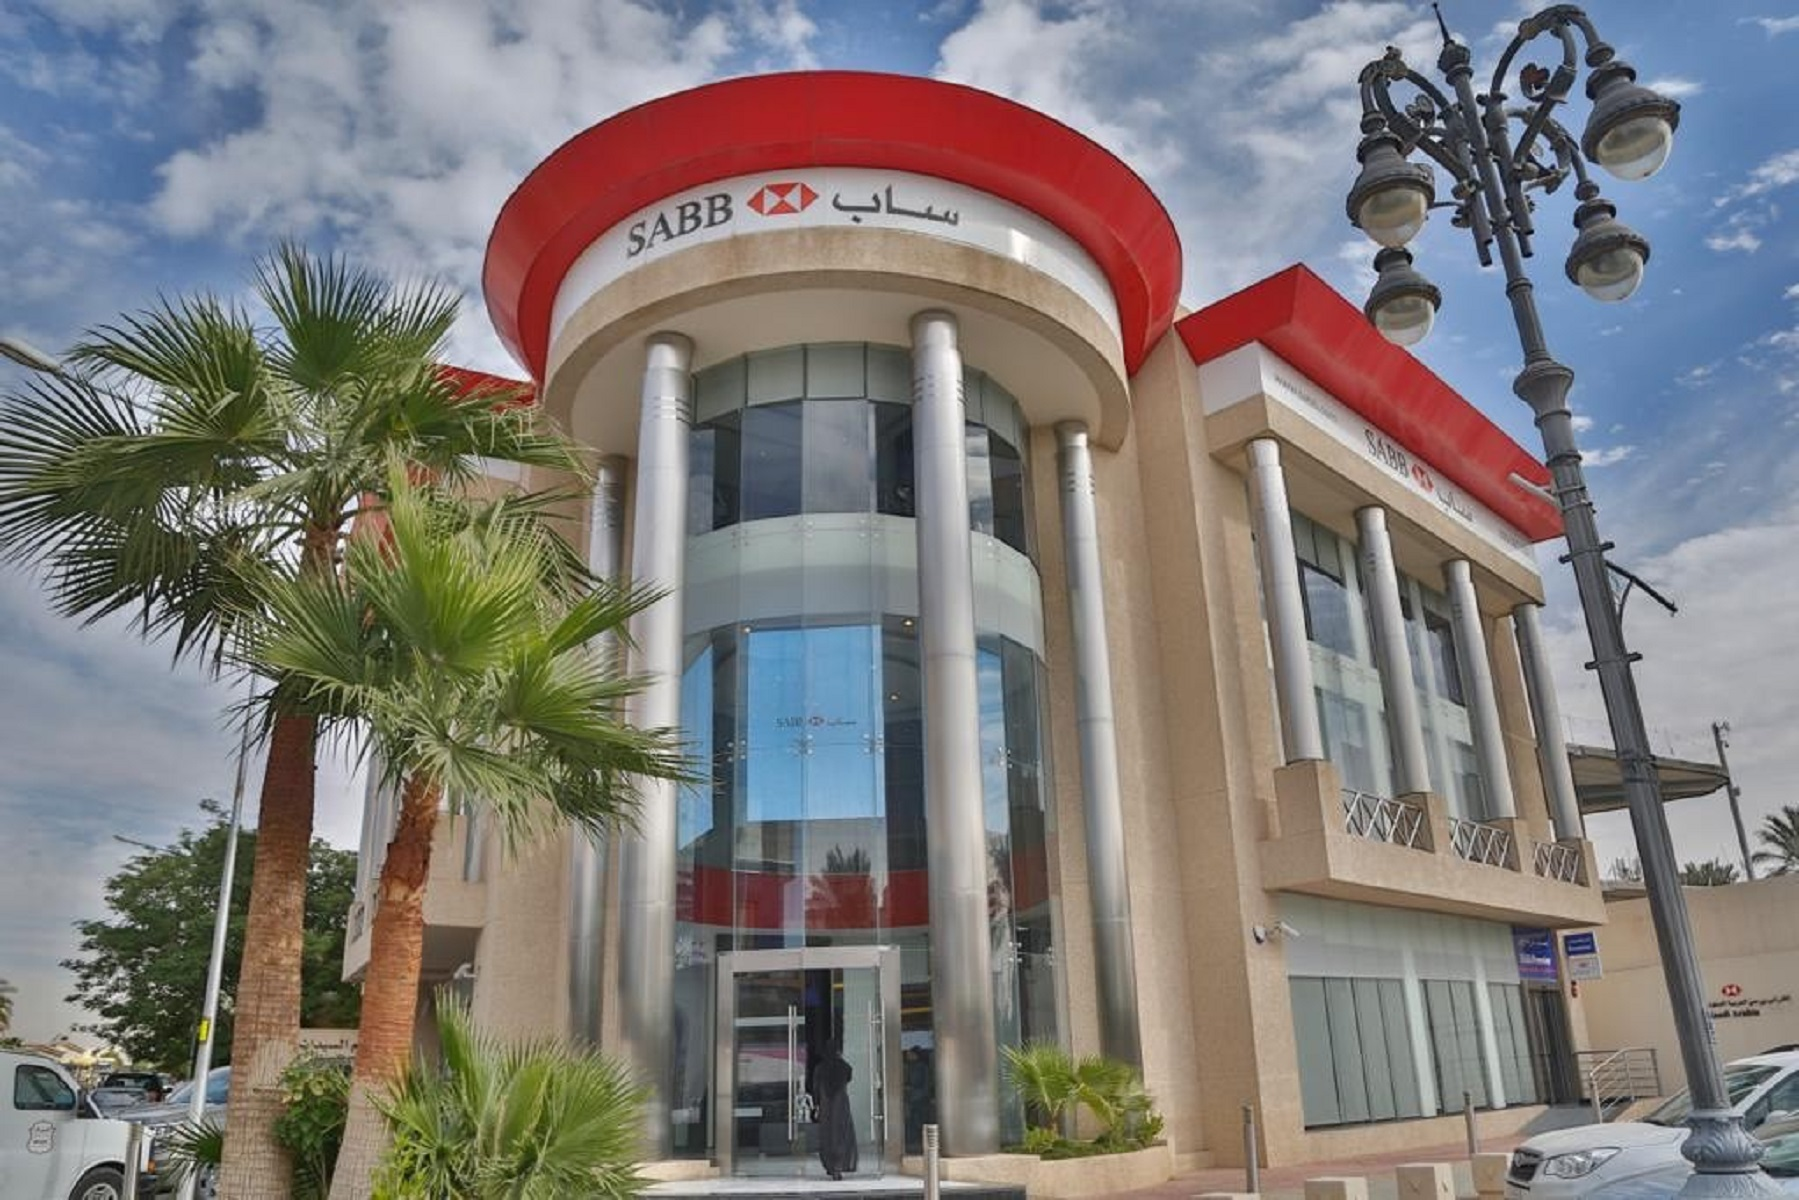 SABB branch with palm trees